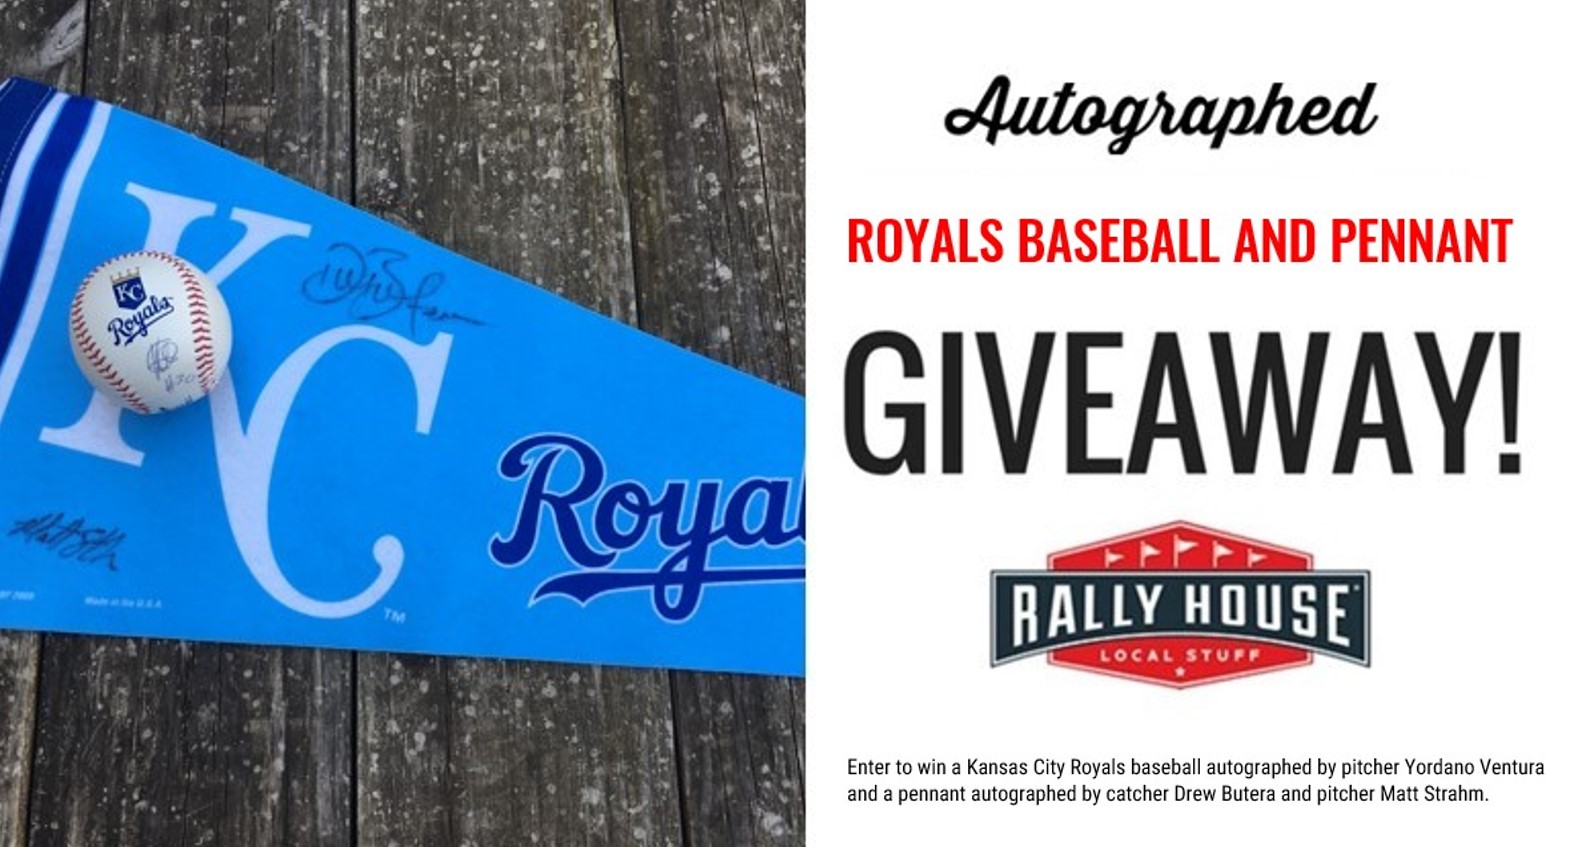 Autographed Royals Baseball and Pennant Giveaway